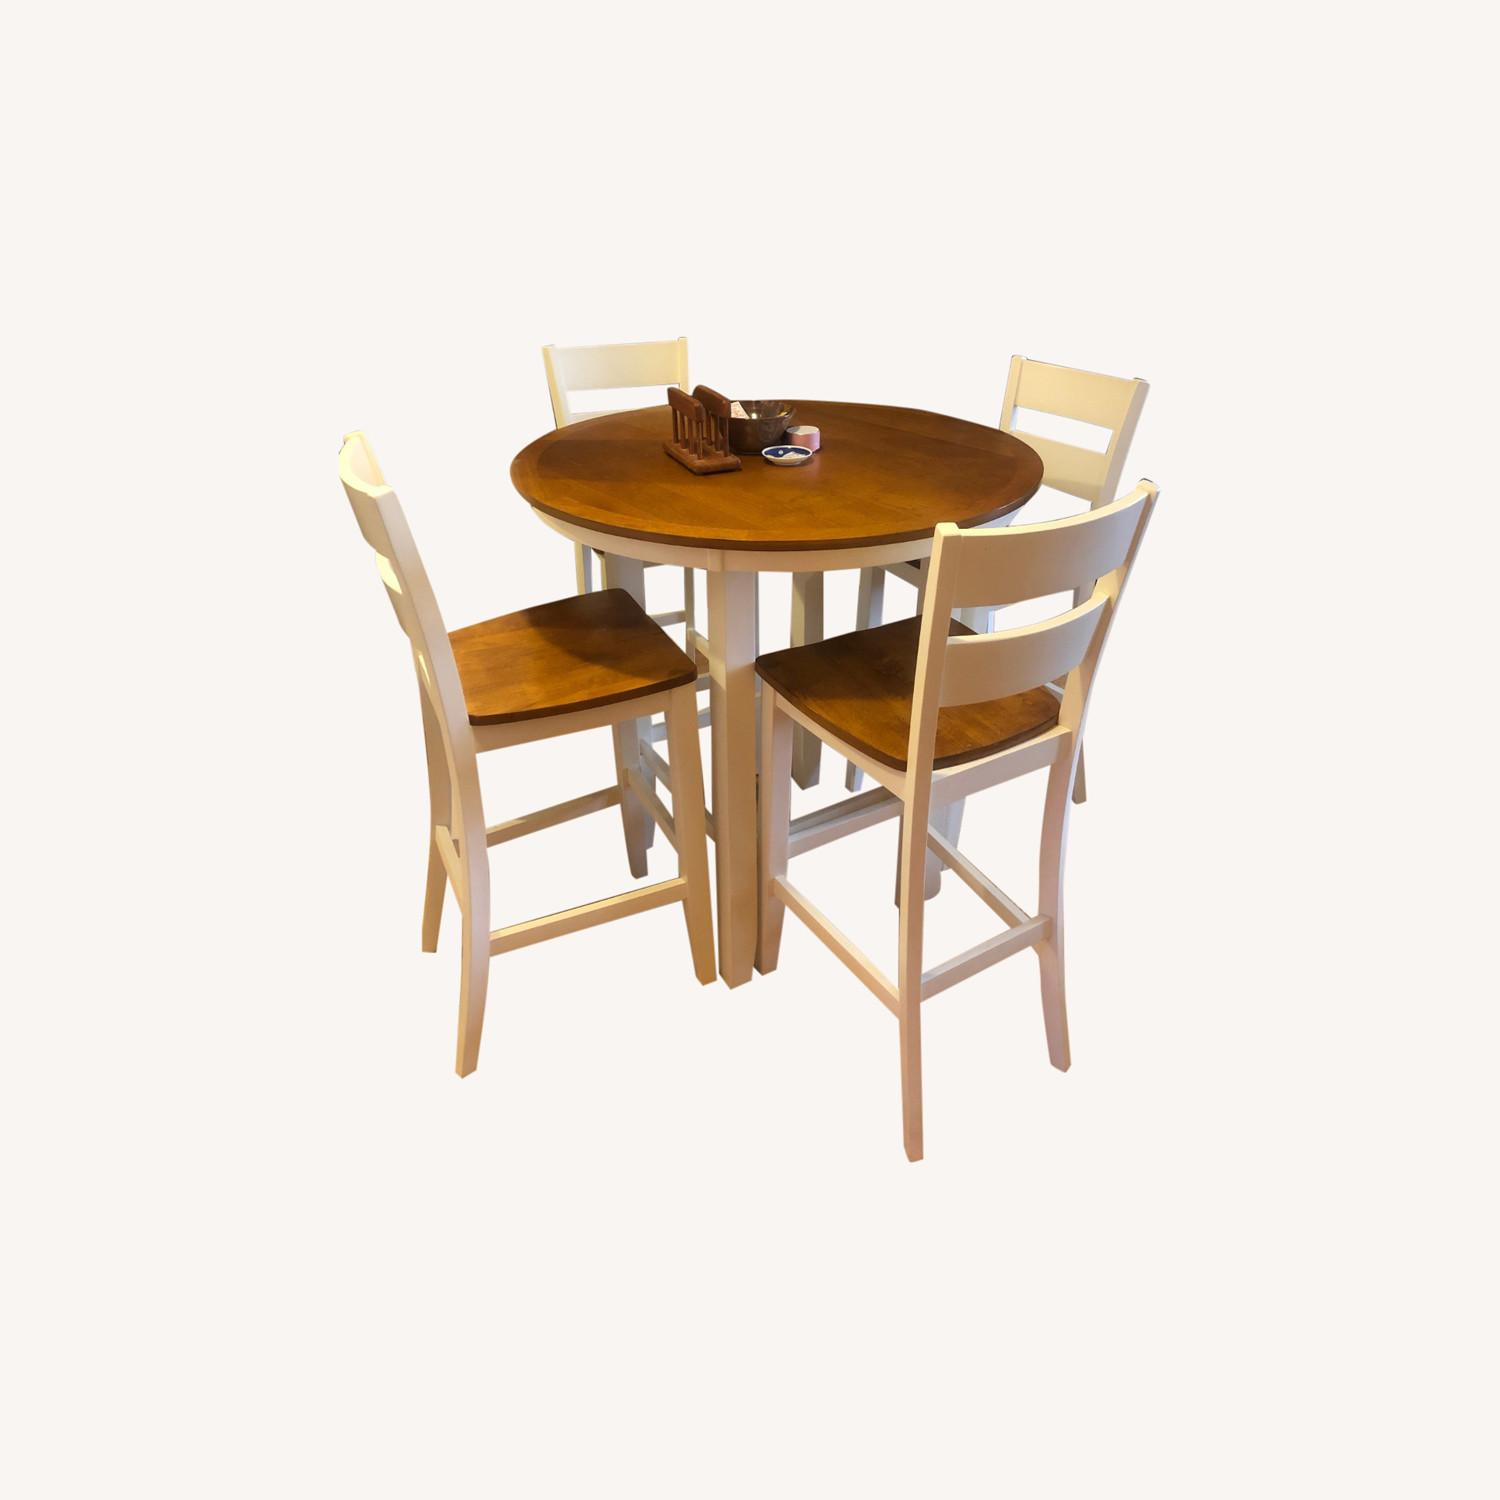 Bar Height Dining Table & Chair Set - image-0